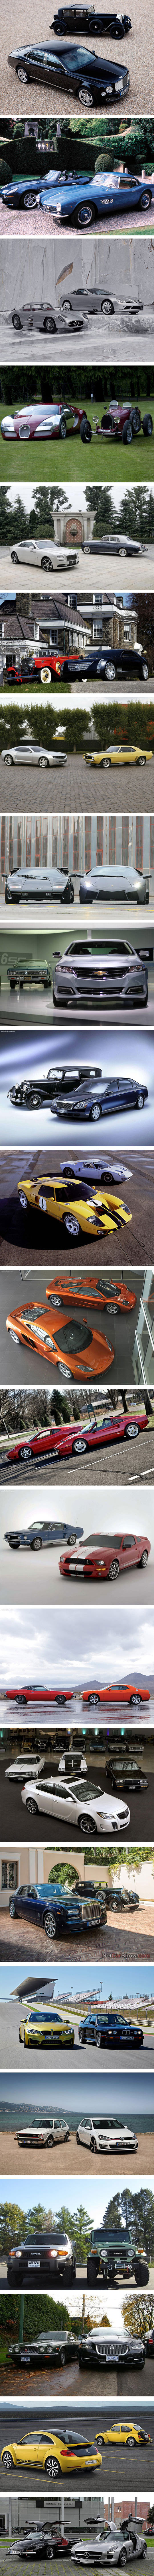 cars-brand-model-now-then-ford